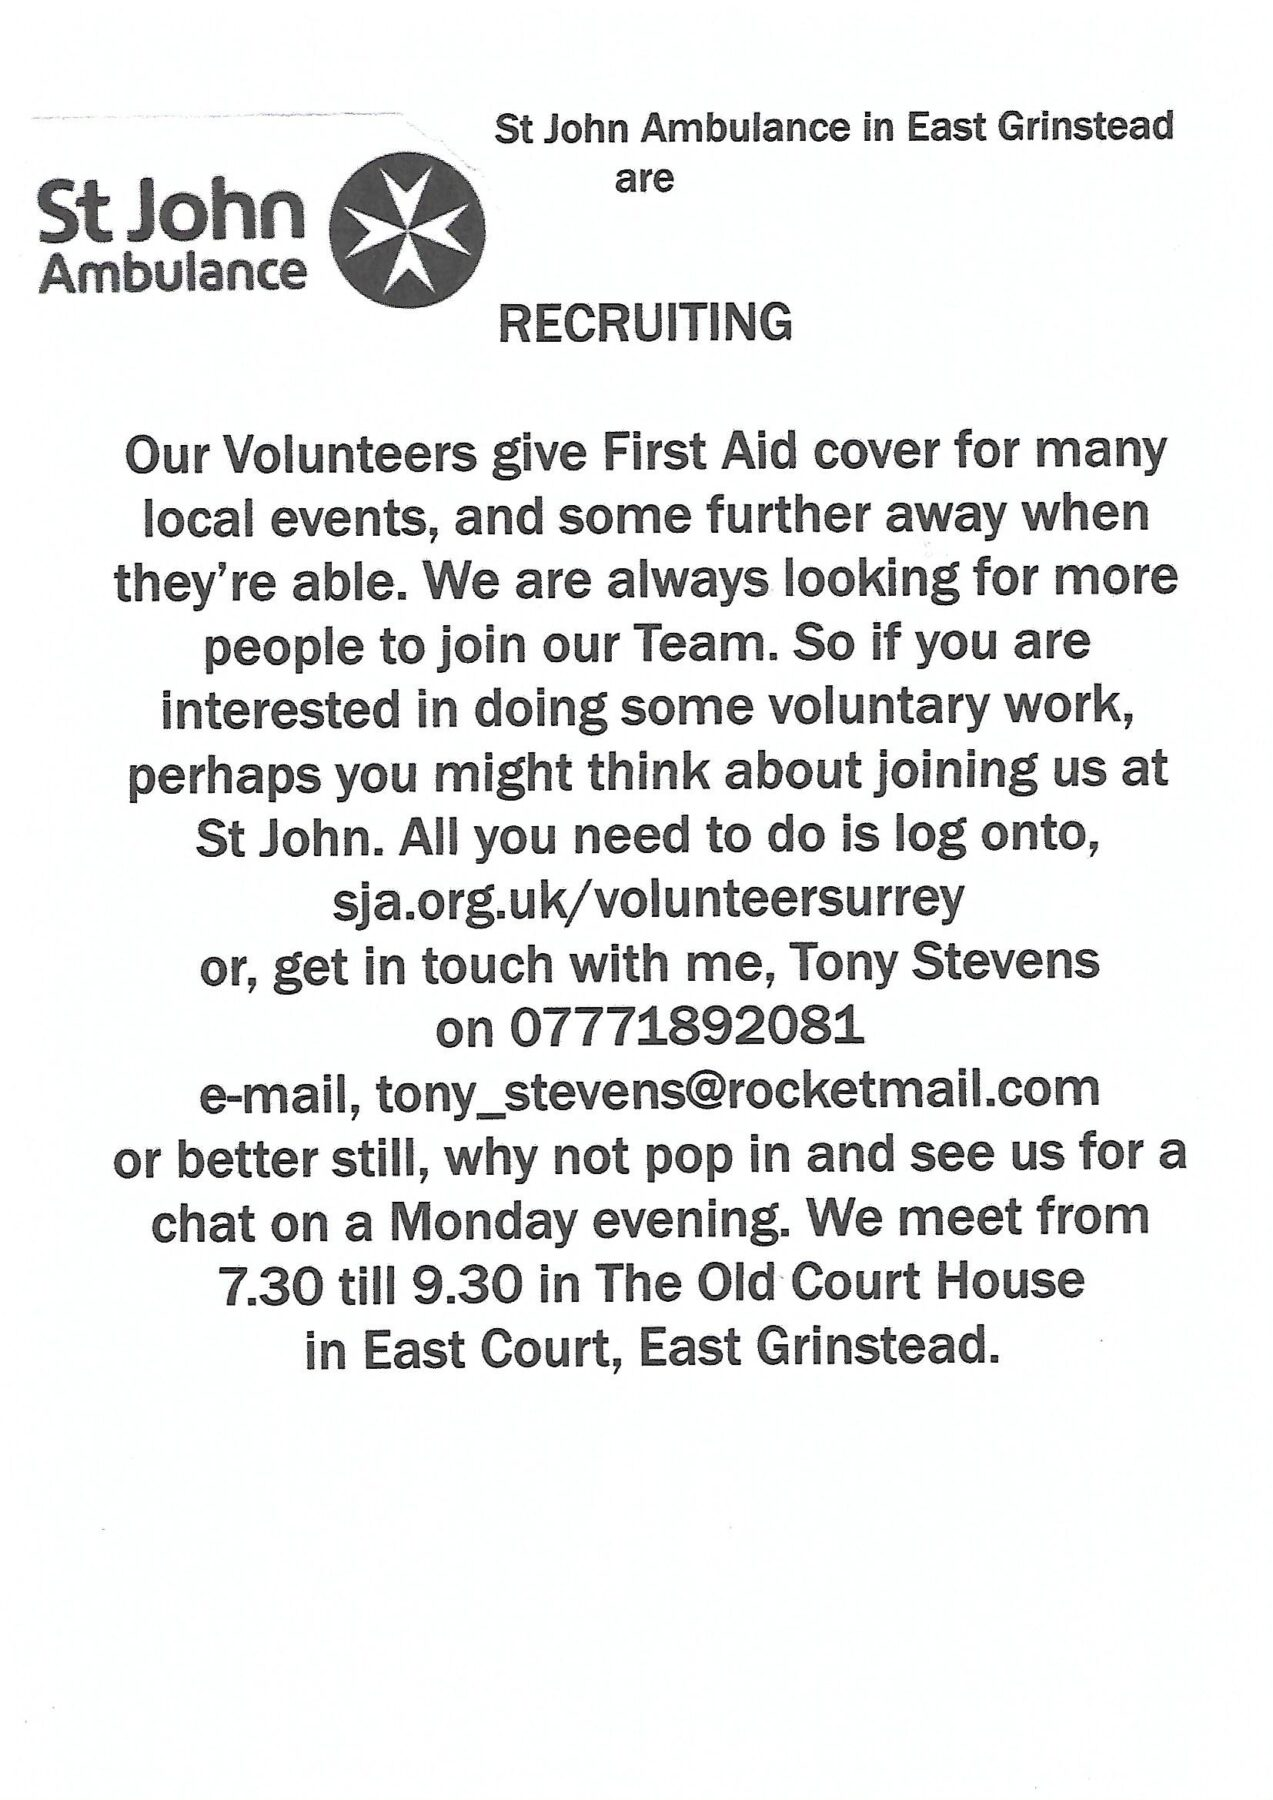 St. John Ambulance Are Recruiting